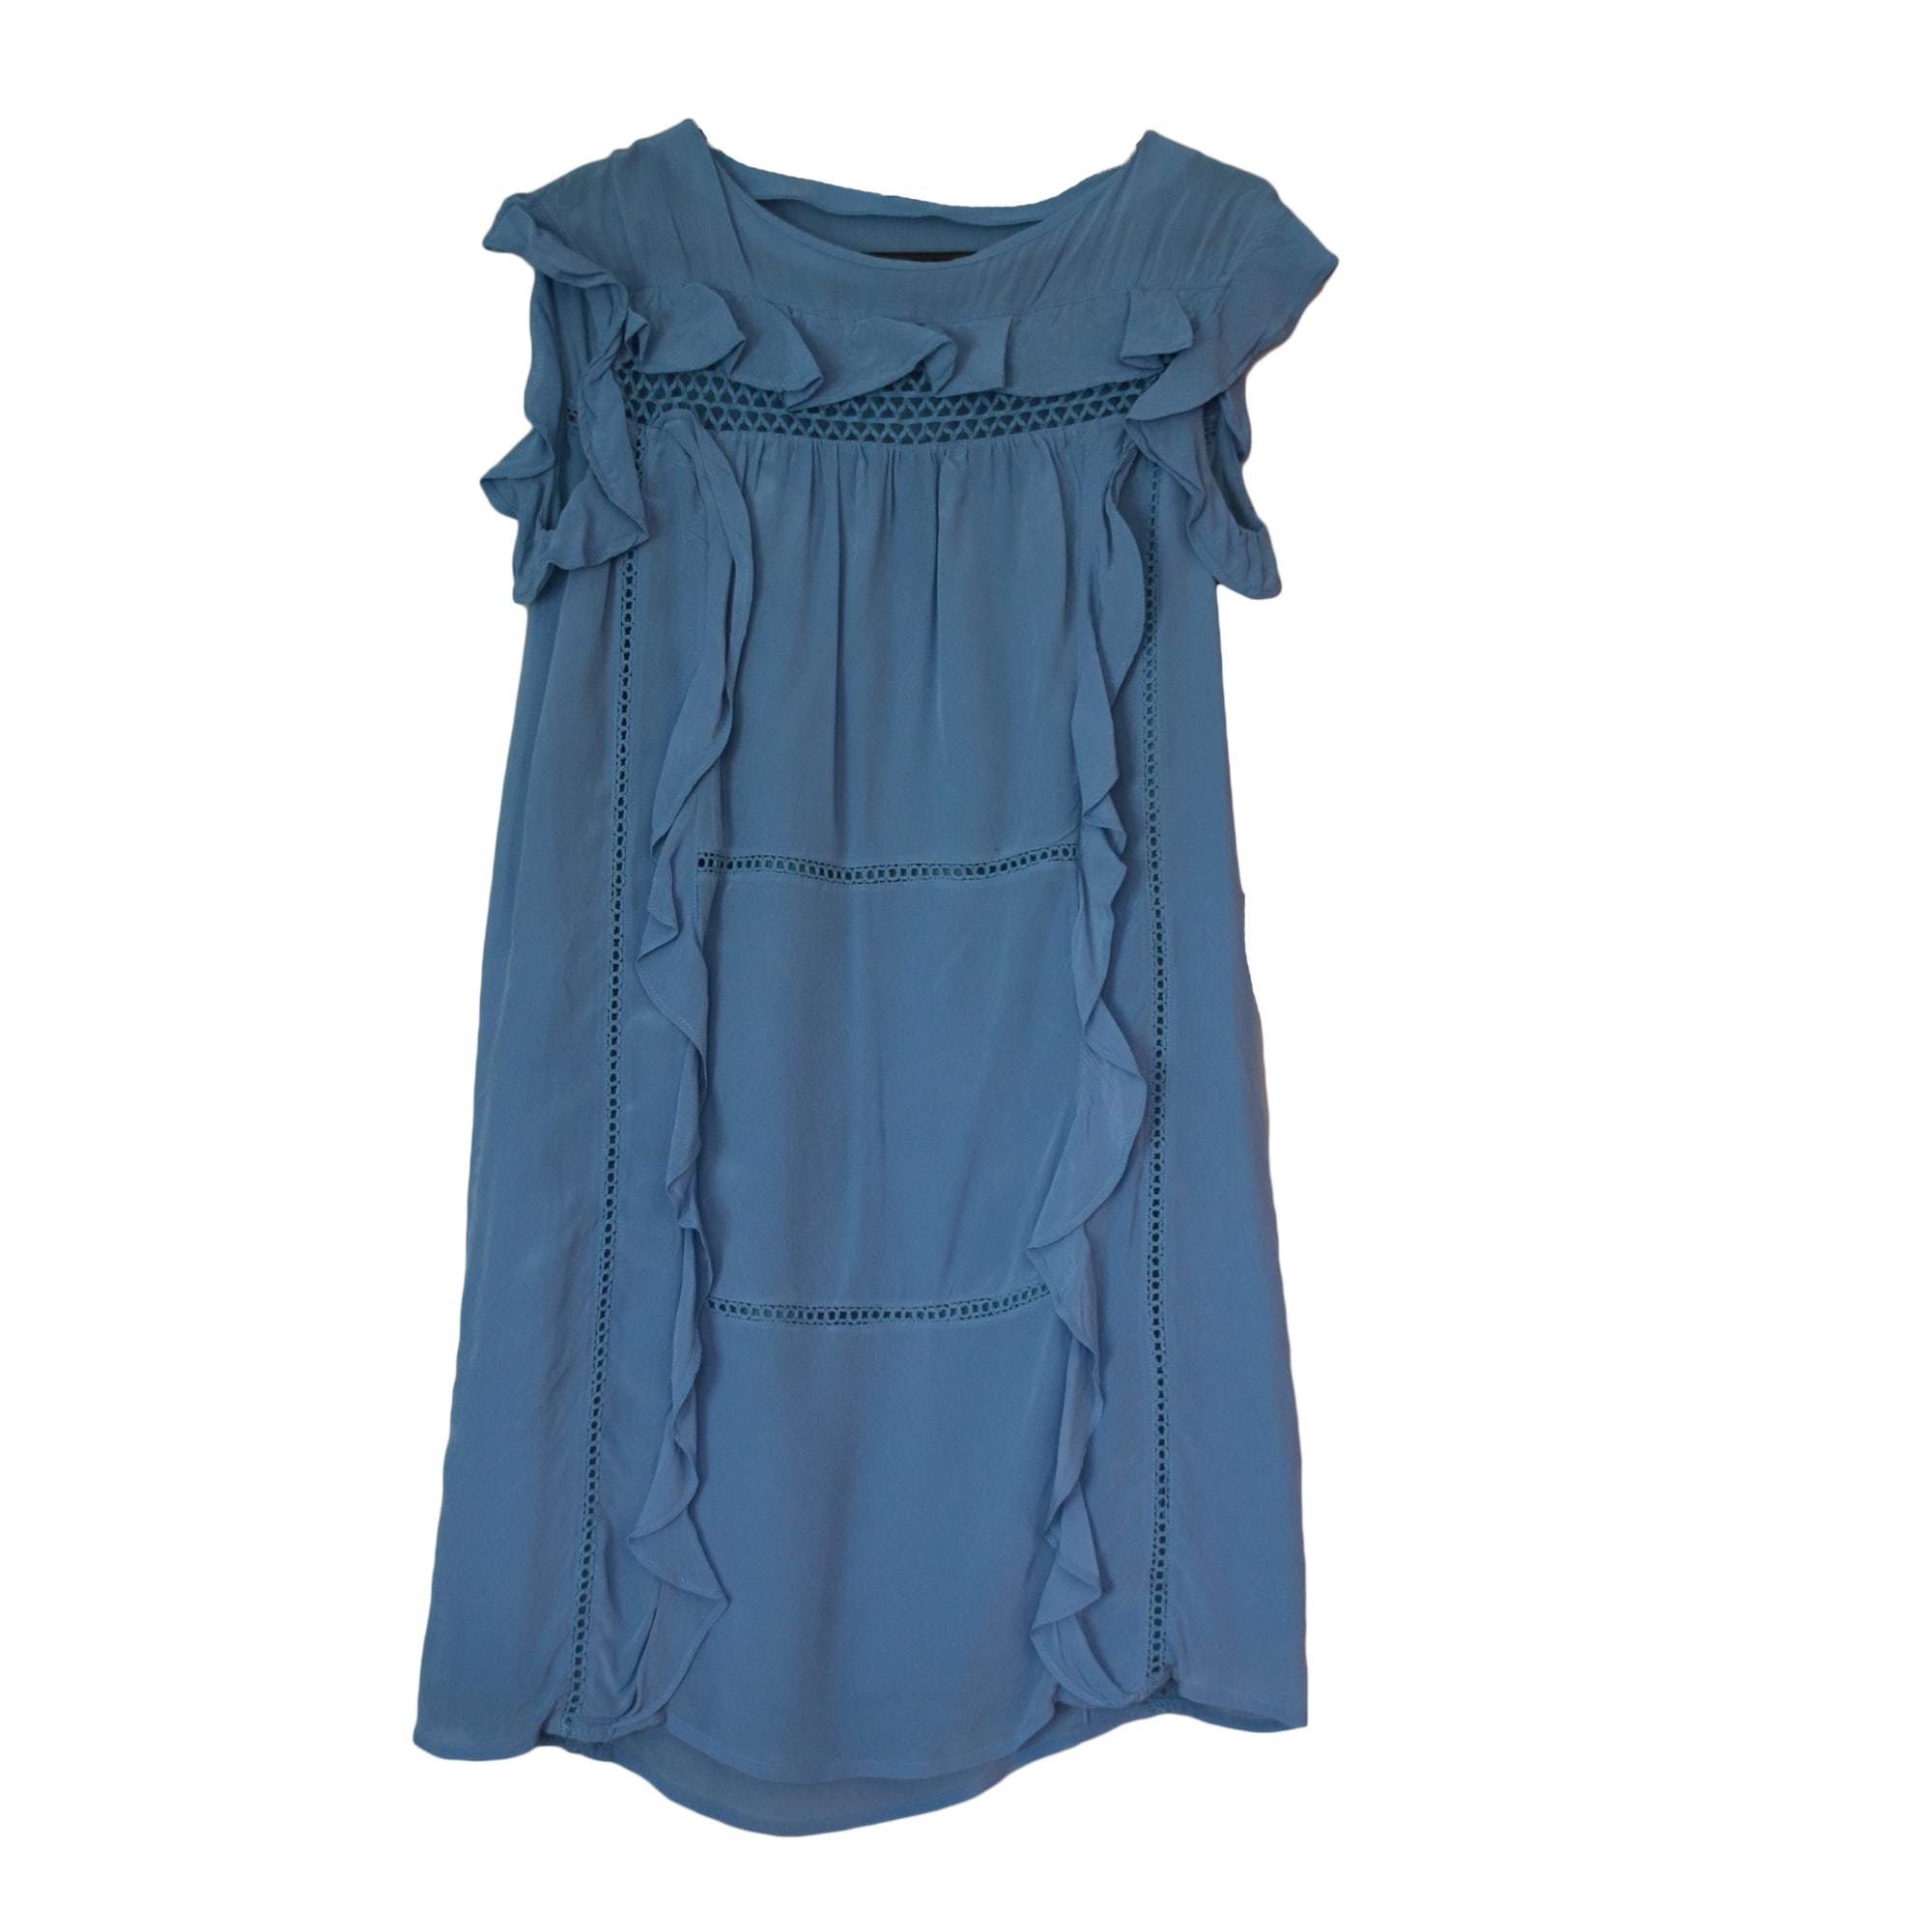 Abito a media lunghezza CLAUDIE PIERLOT Blu, blu navy, turchese